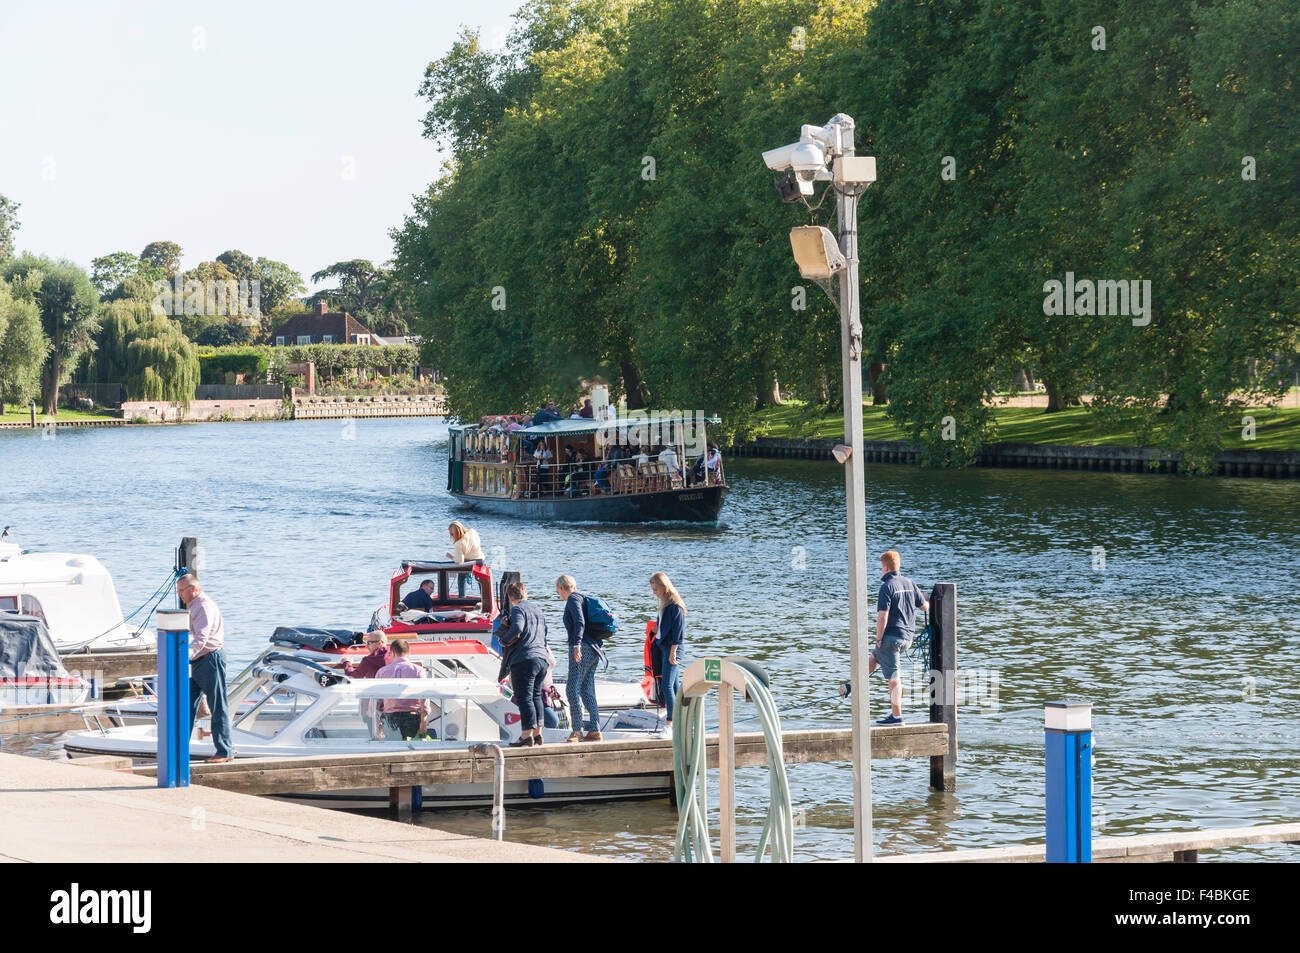 The River Thames waterfront marina (Kriss Cruises), Southlea Road, Datchet, Berkshire, England, United Kingdom - Stock Image